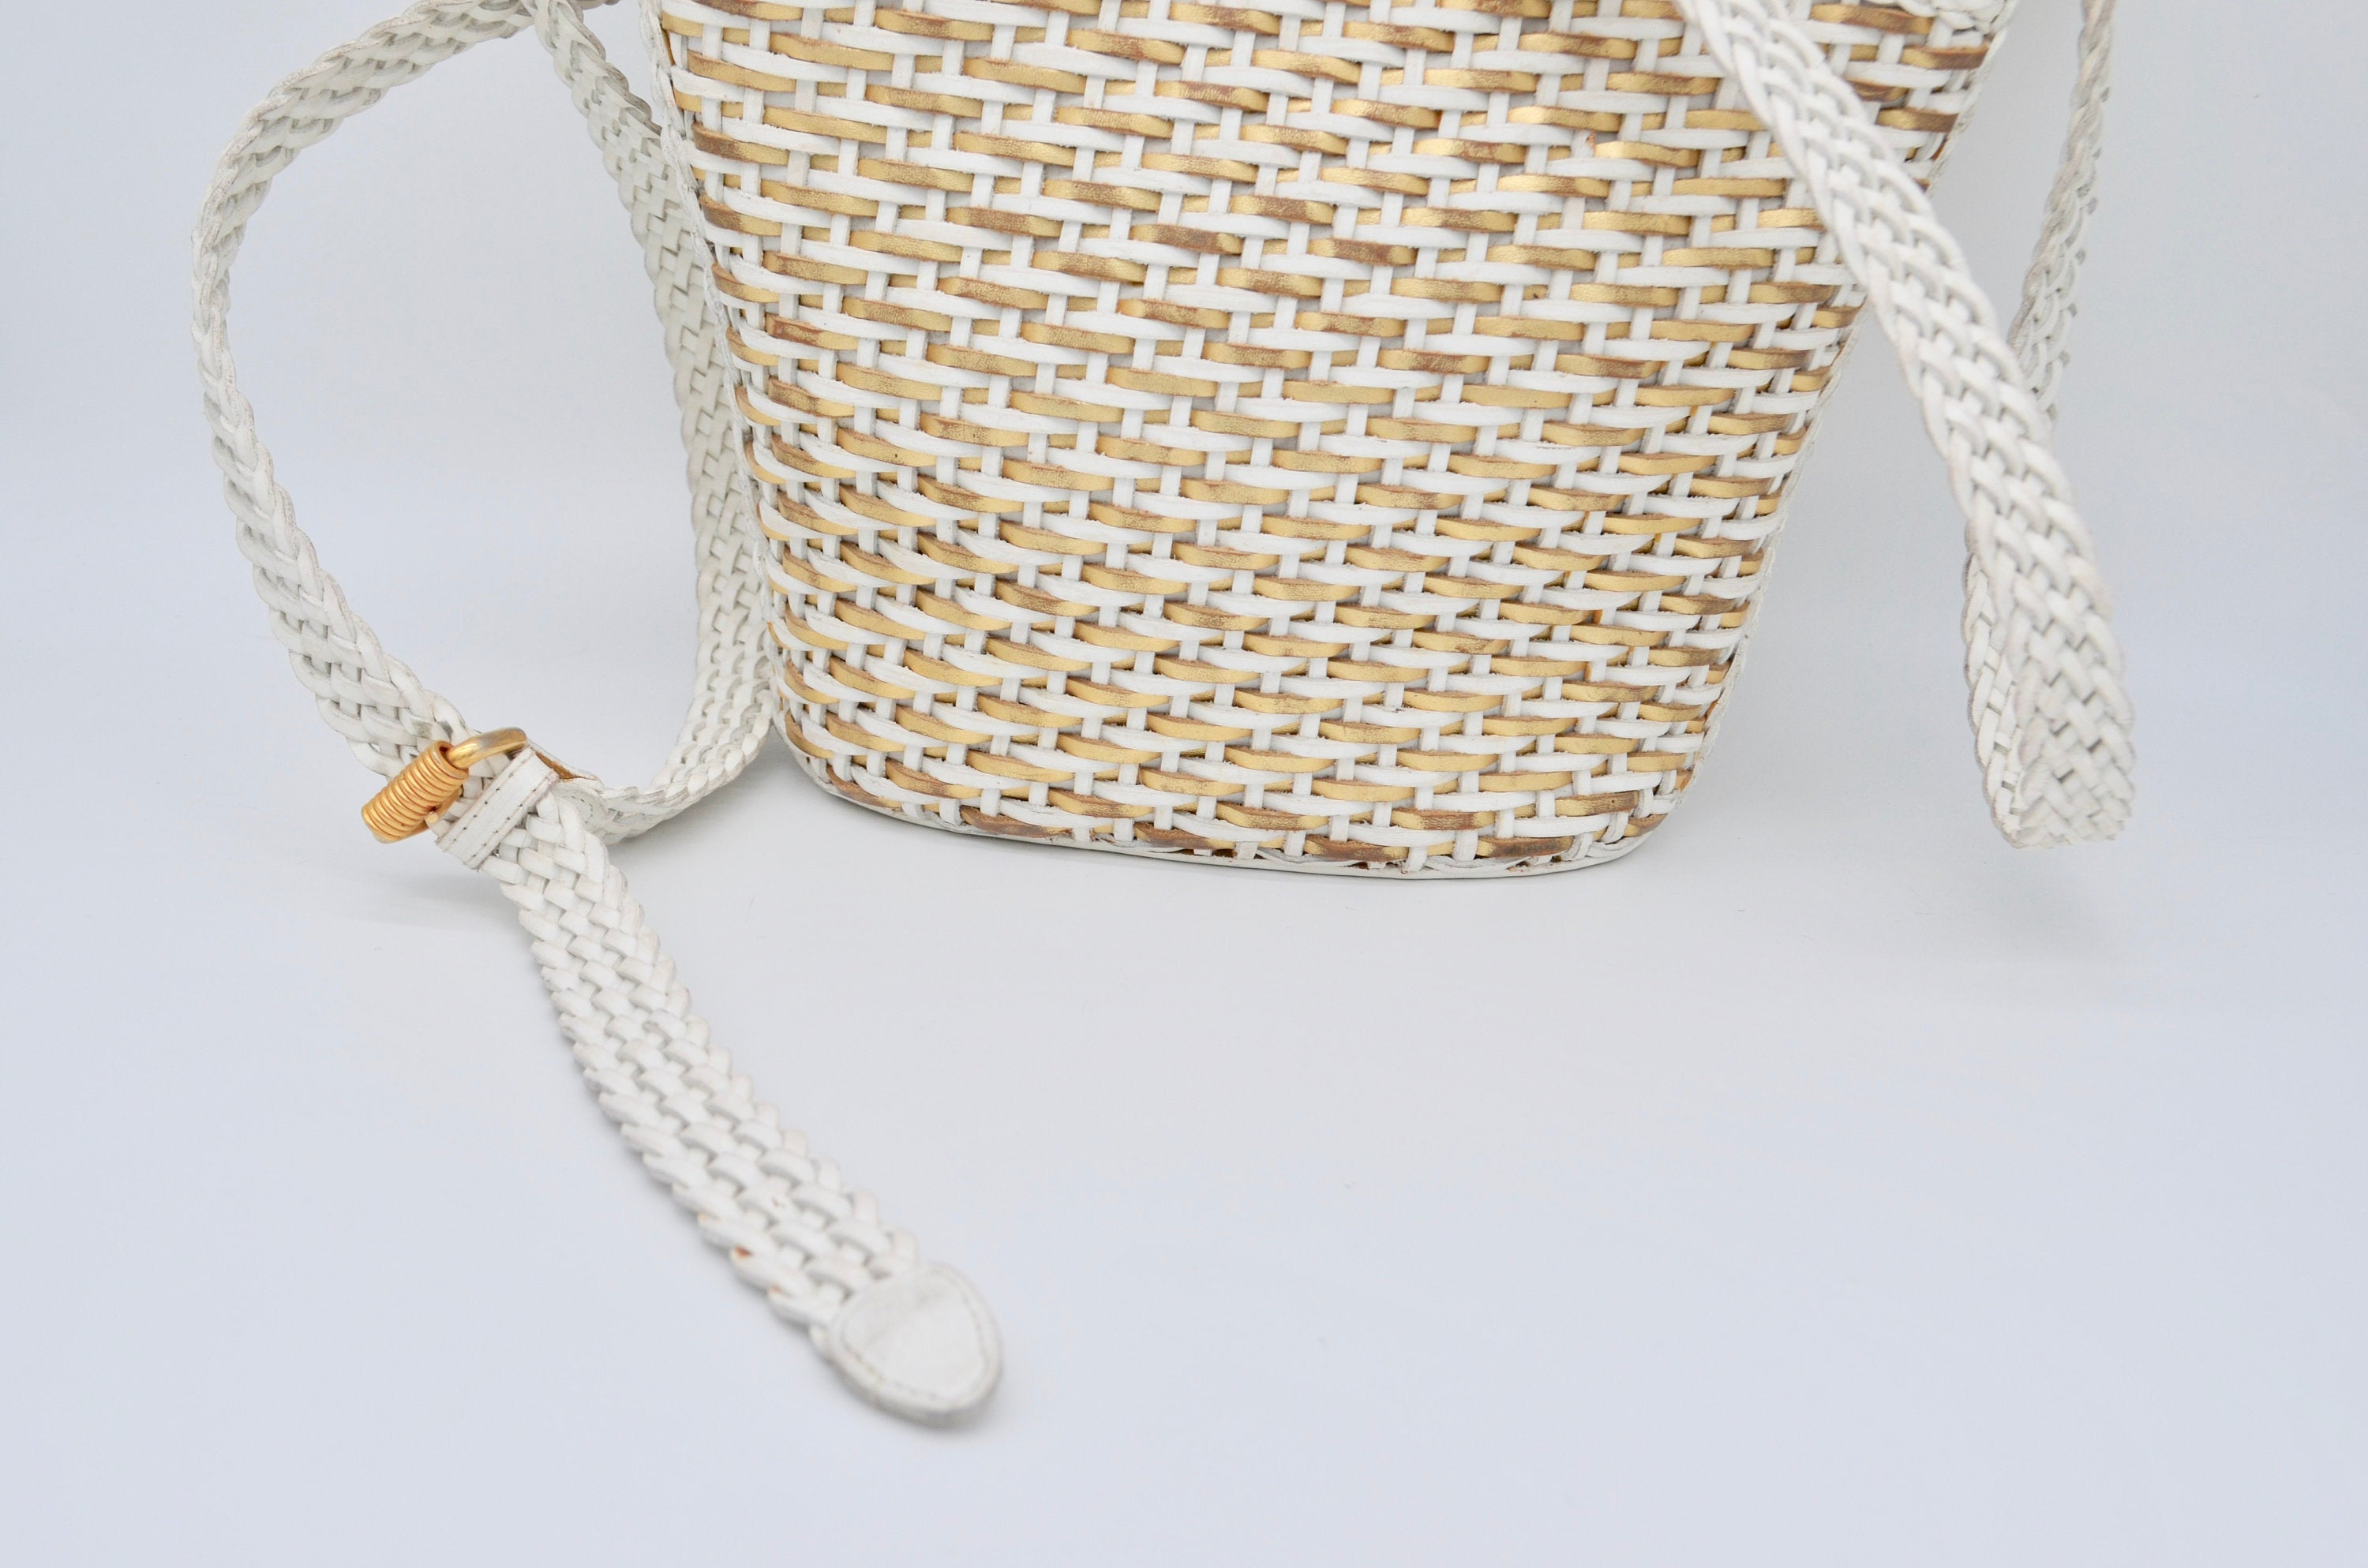 Gold/White Woven Braided Leather Cem Crossbody Handbags Brazilian Designer Bag Summer